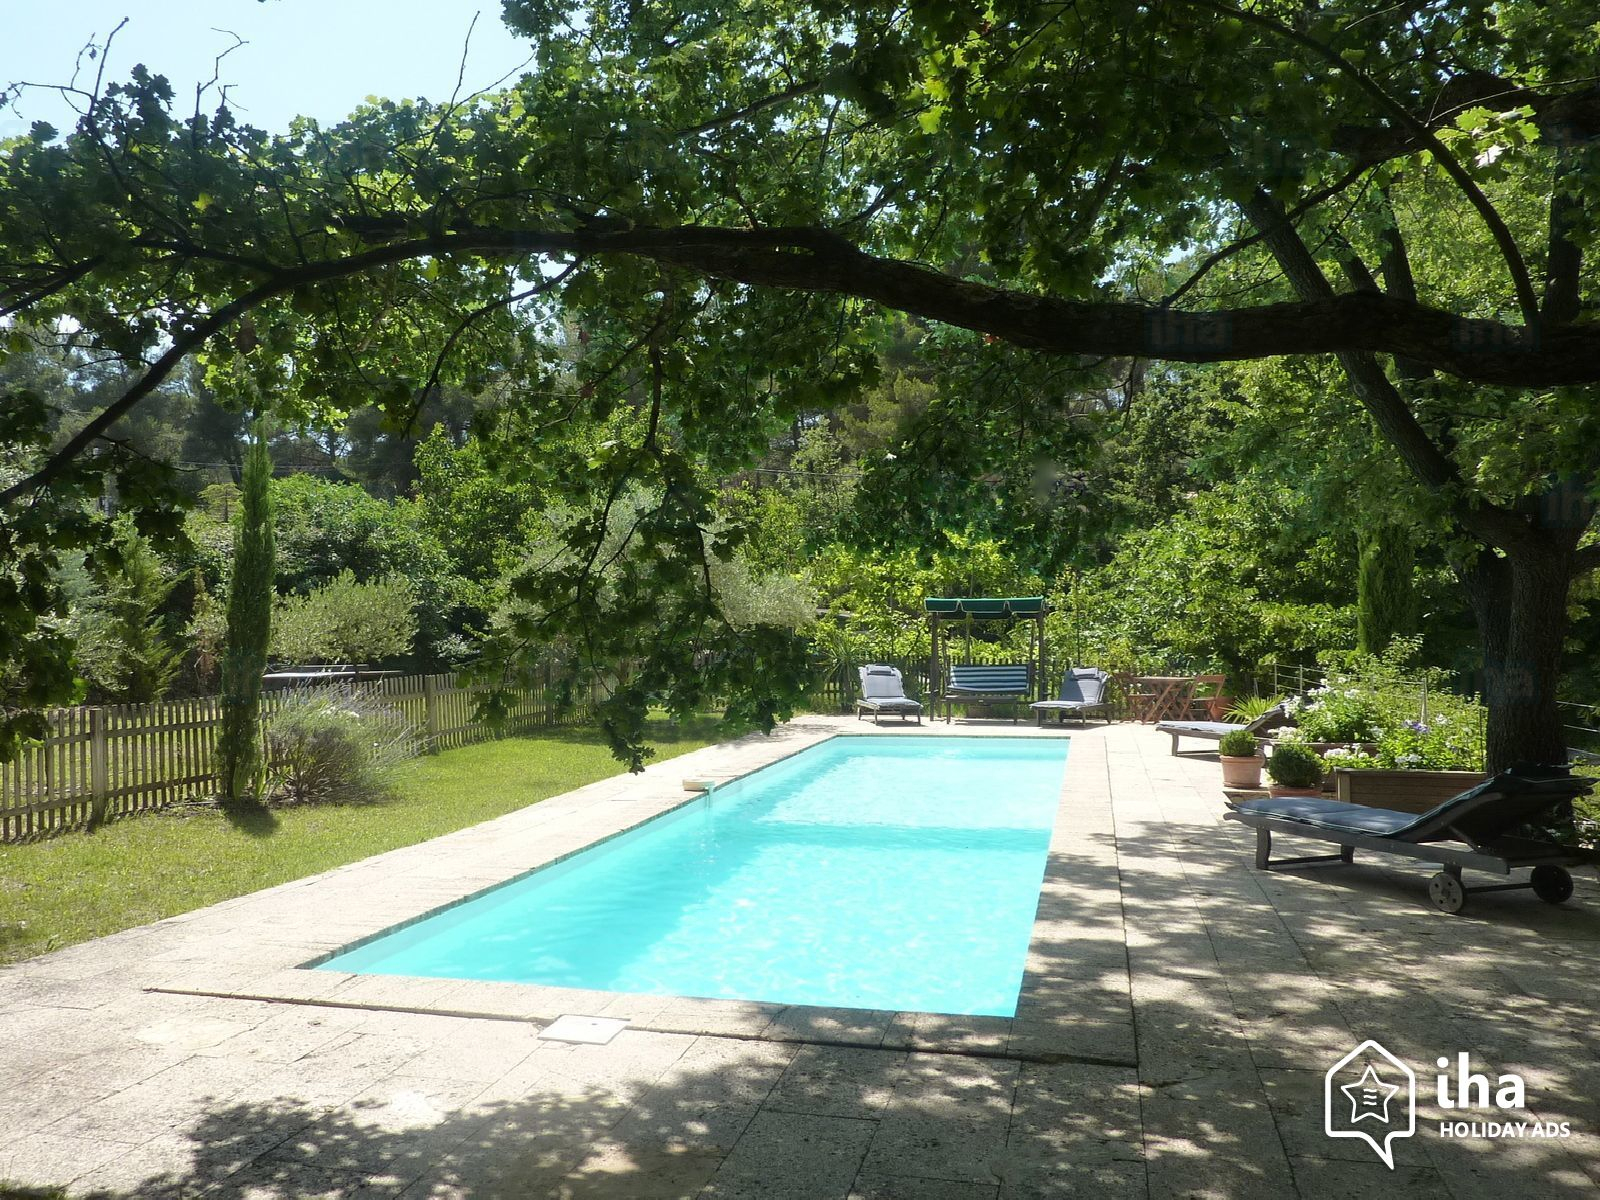 4 Bedrooms House For Rent From 2 To 8 People tout Piscine Fuveau